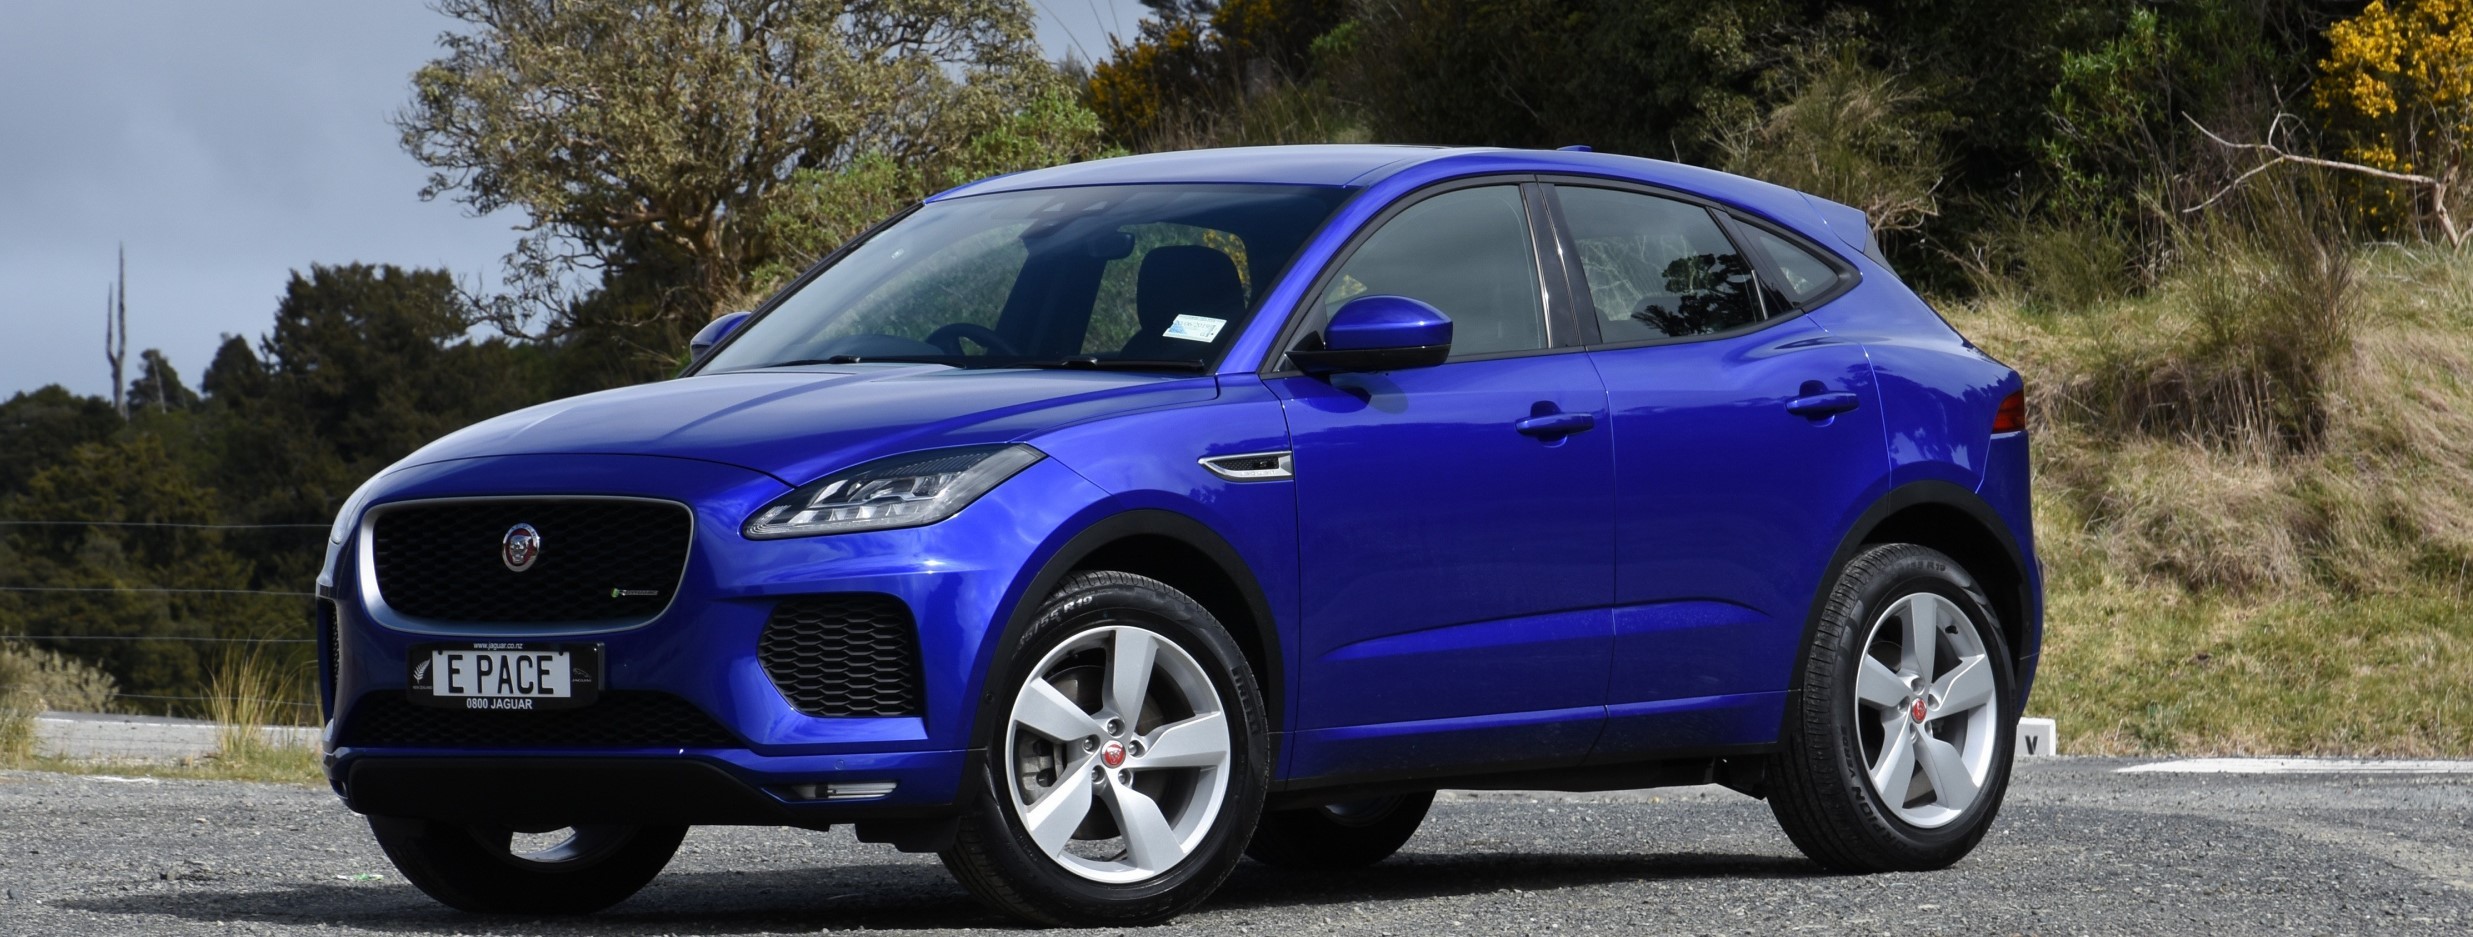 Jaguar is dipping its toes into the compact SUV market. And, writes David Thomson, with the E-Pace it's going to make quite a splash.